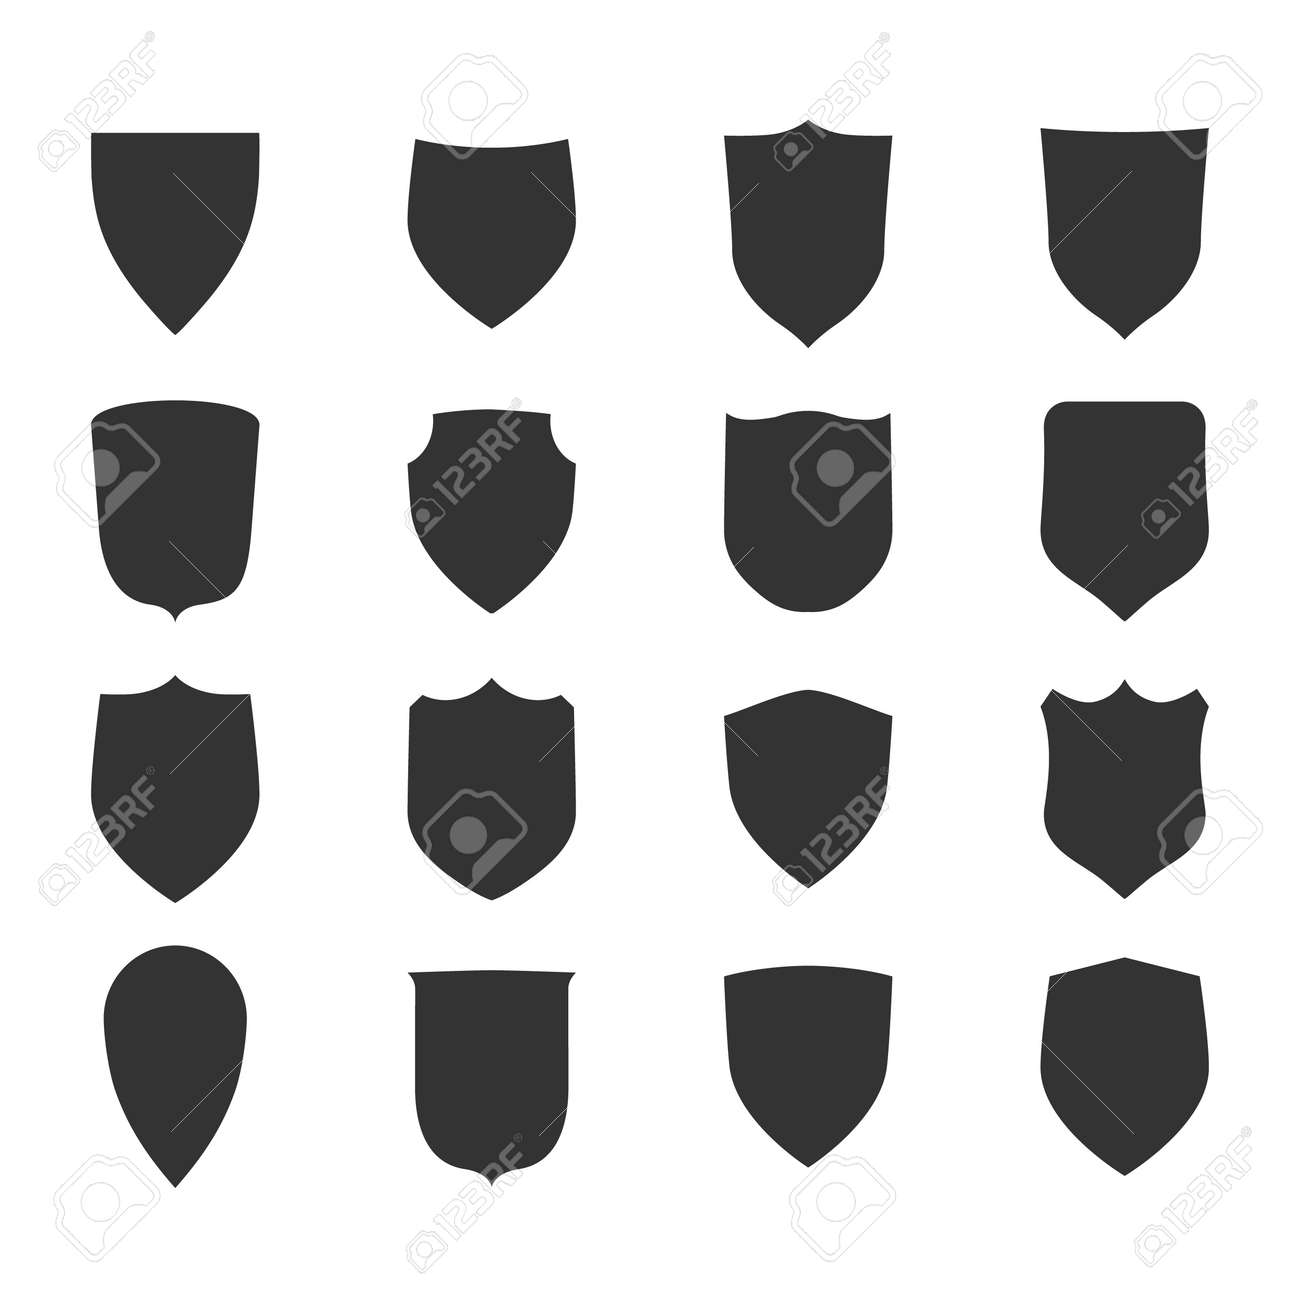 Shield shape icons set. Black label signs. Symbol of protection, - 135879223